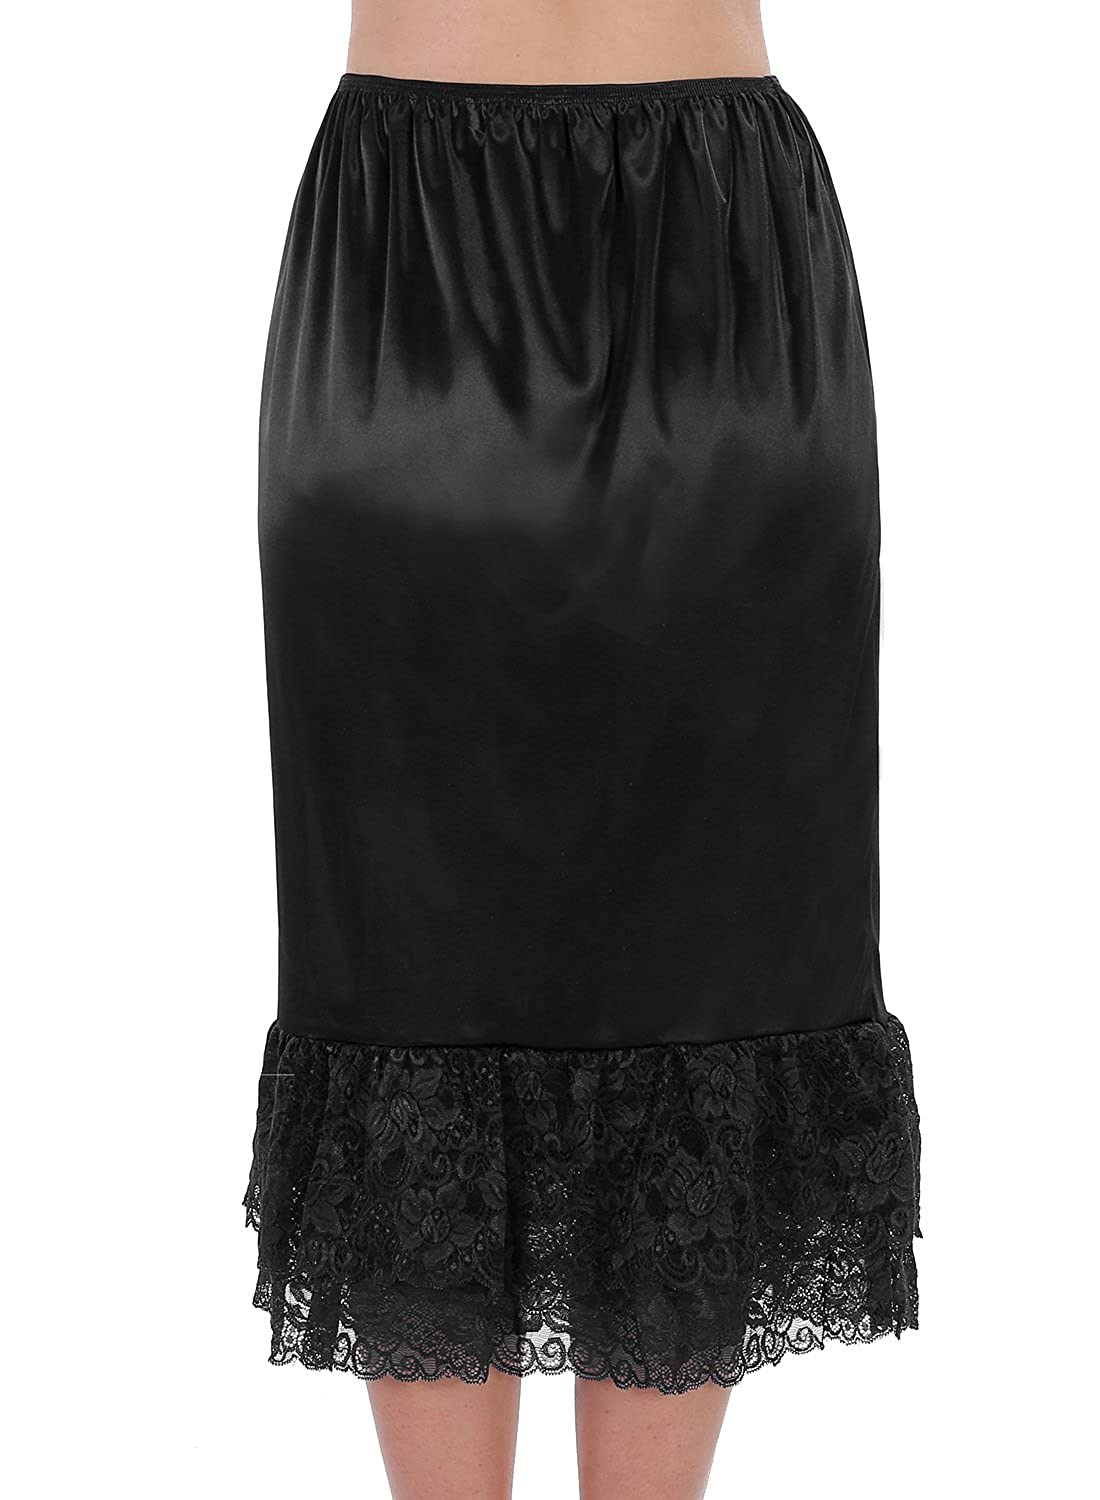 Find Dress Women Half Slip Flexible Underskirt with Lace Edging